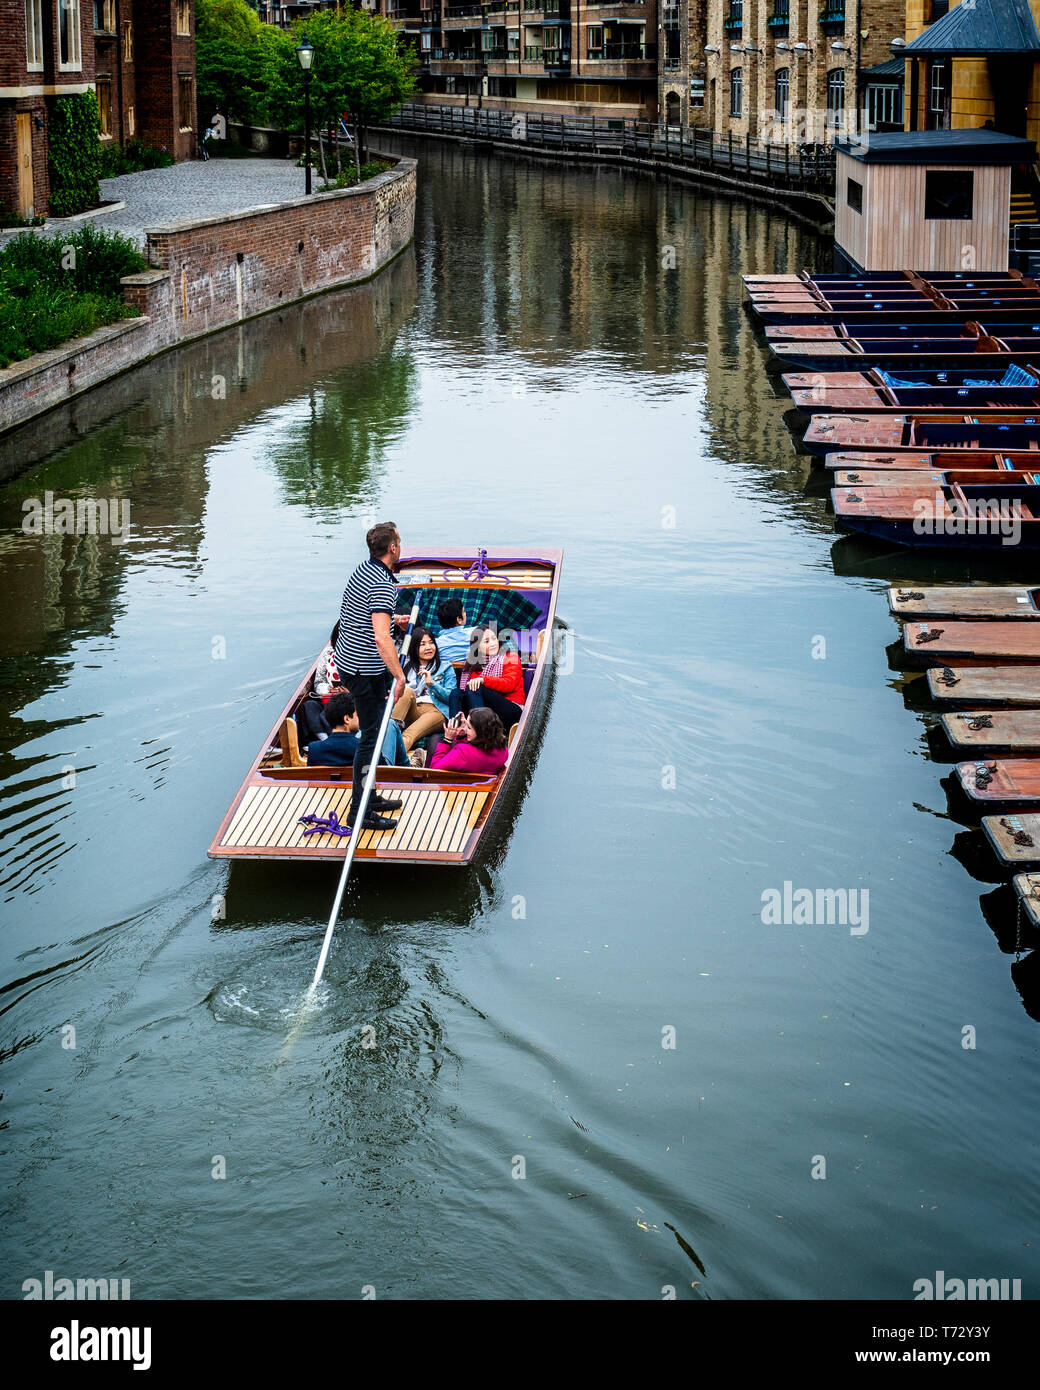 Cambridge Tourism - tourists take a punt along the River Cam in central Cambridge UK - Cambridge Punting - Stock Image